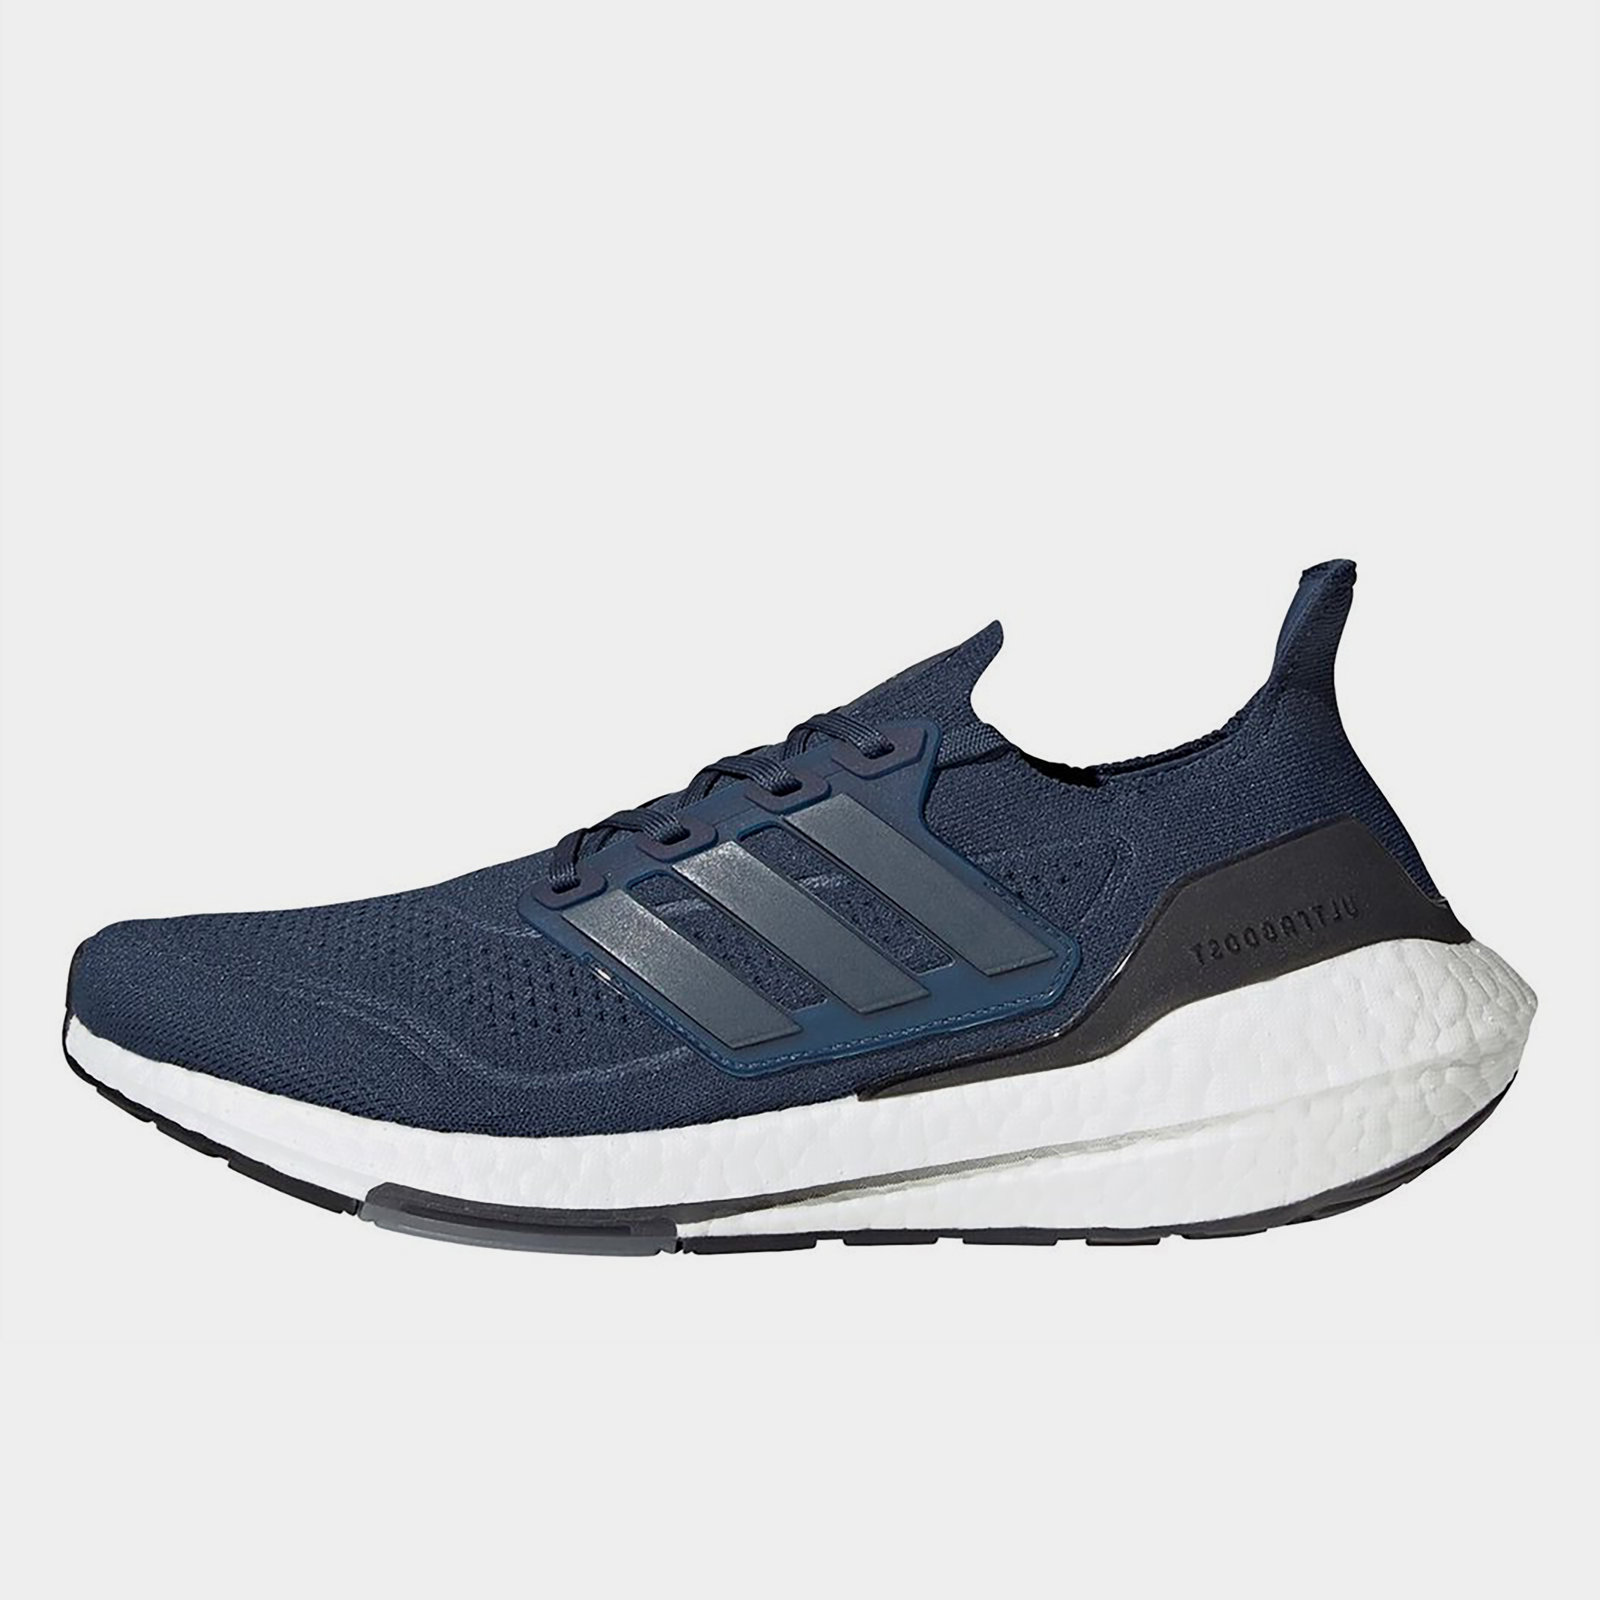 Ultraboost 21 Mens Running Shoes